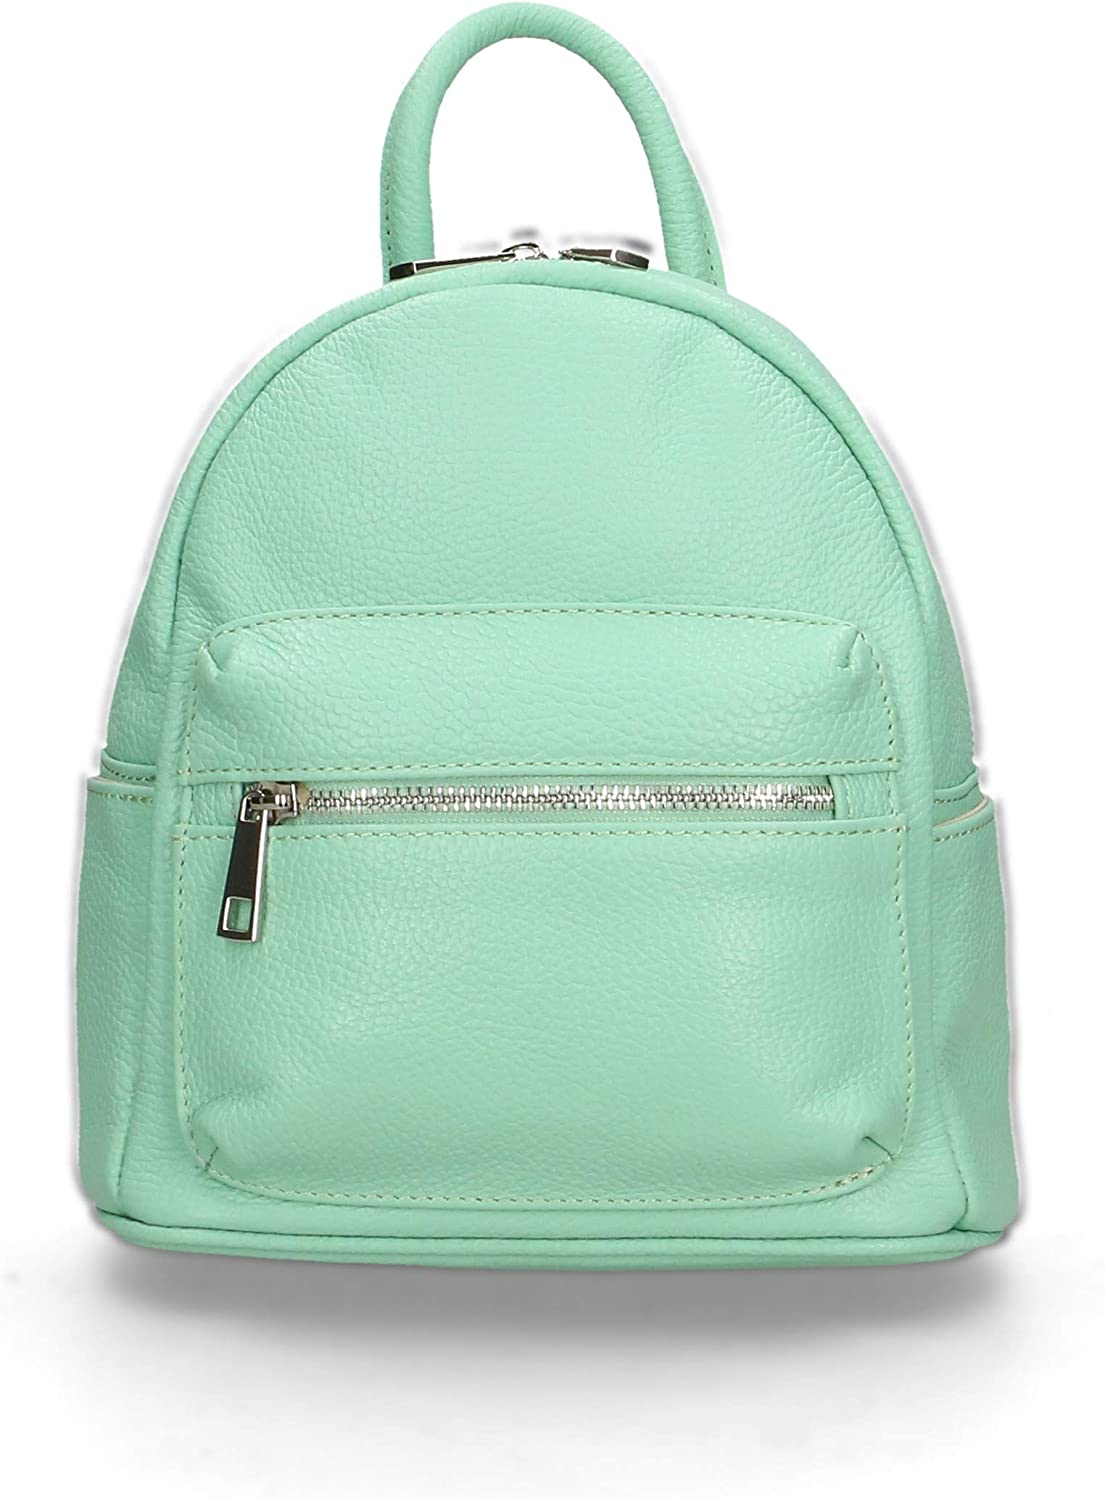 Chicca Borse Backpack Bag in genuine leather made in Italy - 25x23x12 Cm Mint